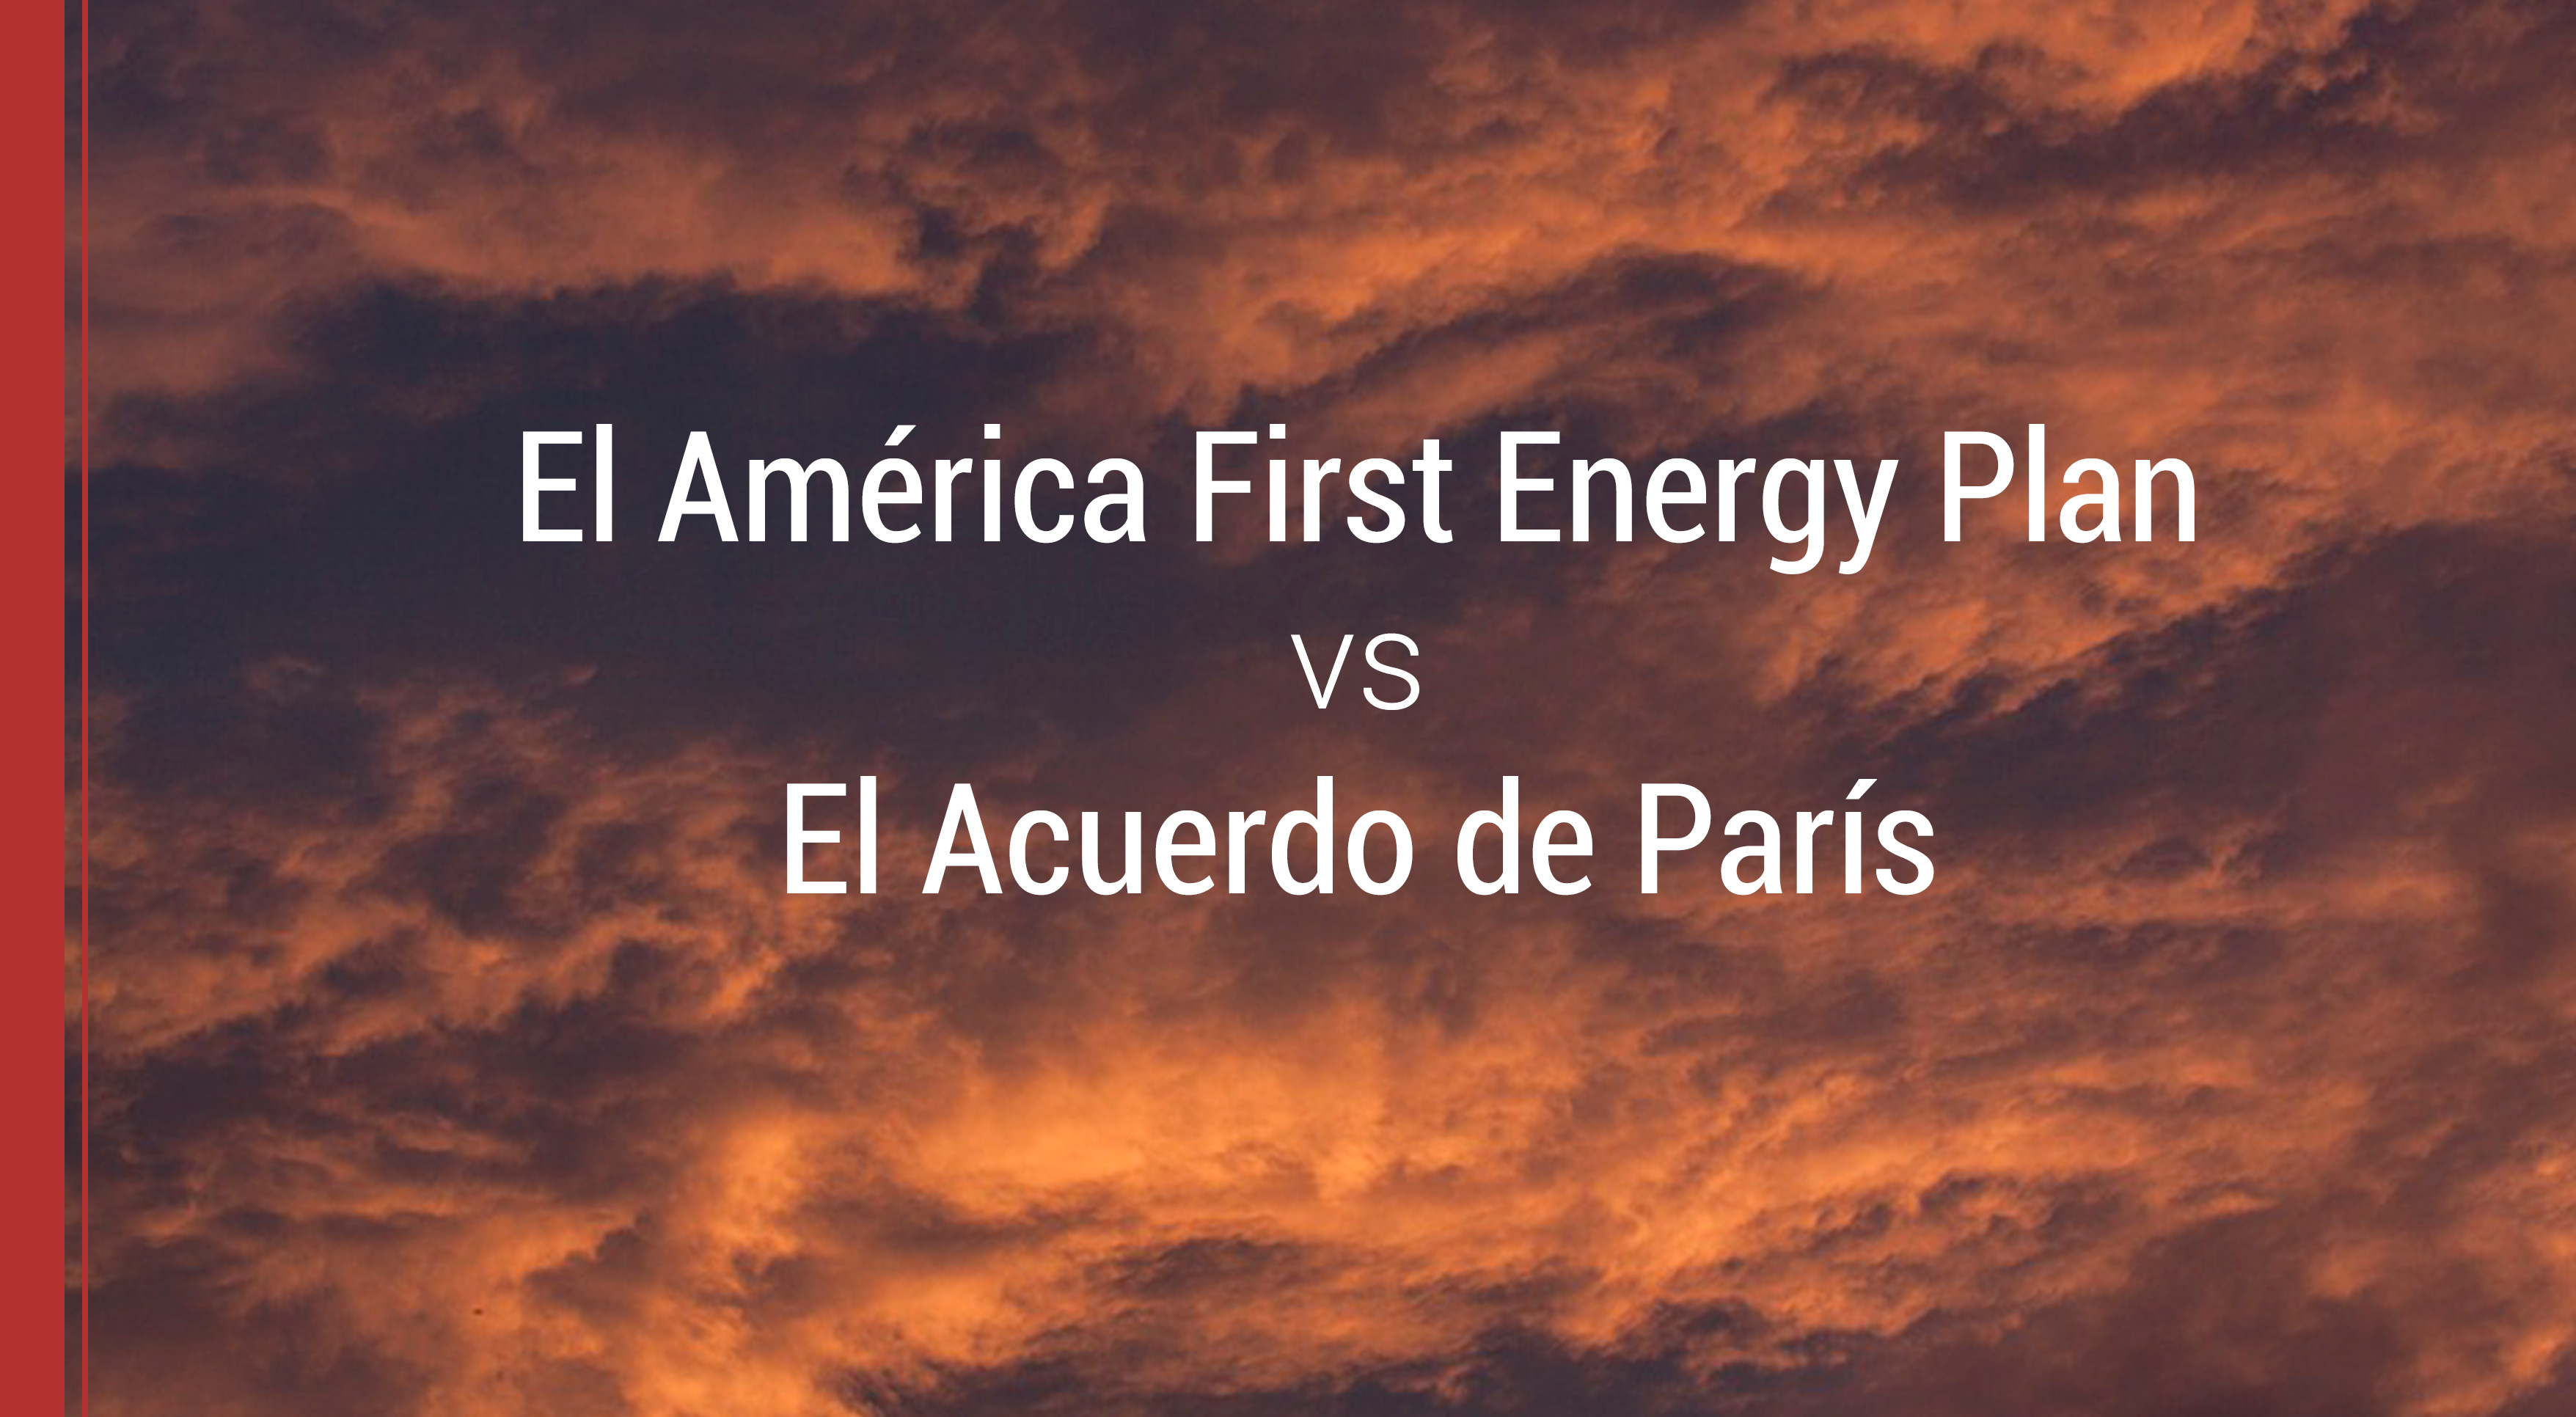 america-first-energy-plan-acuerdo-de-paris El América First Energy Plan vs El Acuerdo de París